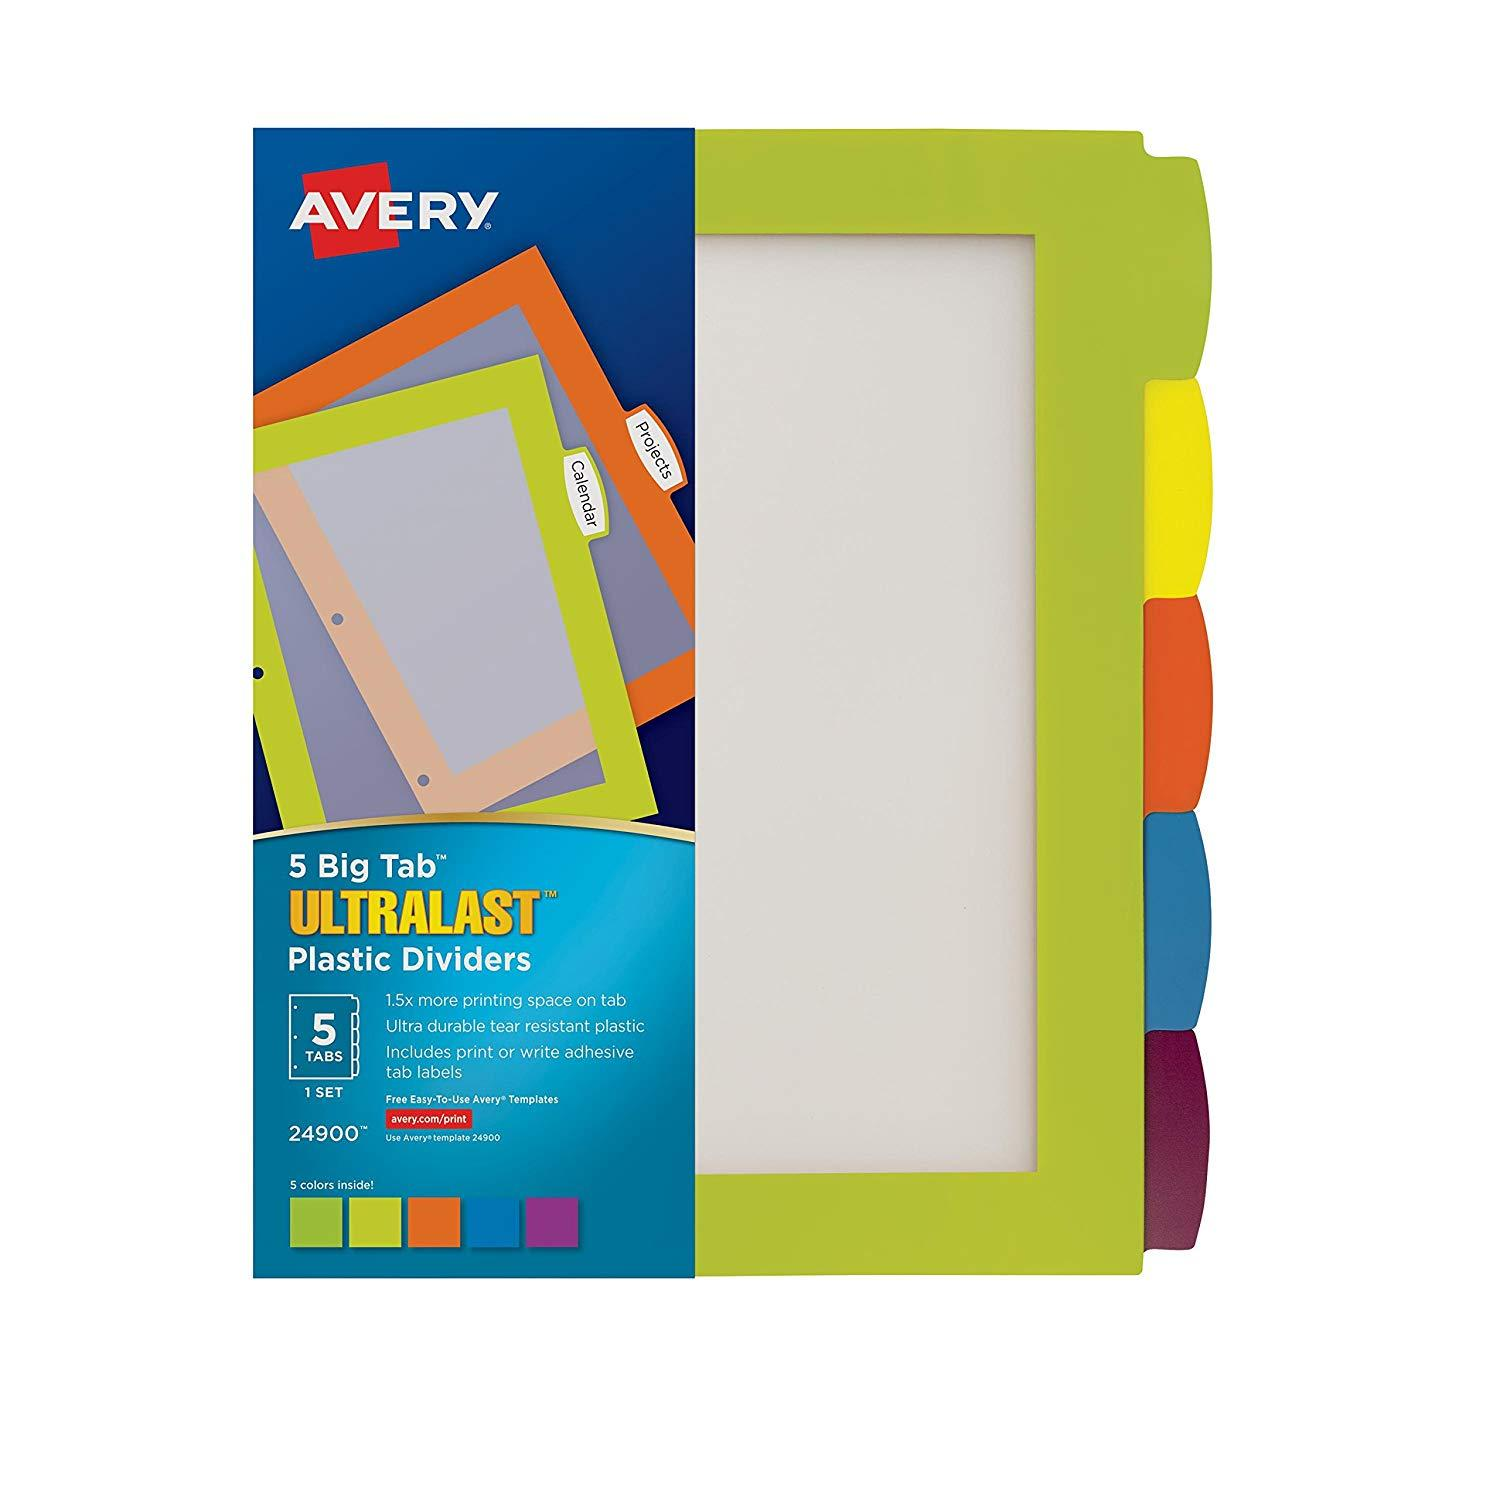 Avery Divider Templates 5 Tabs